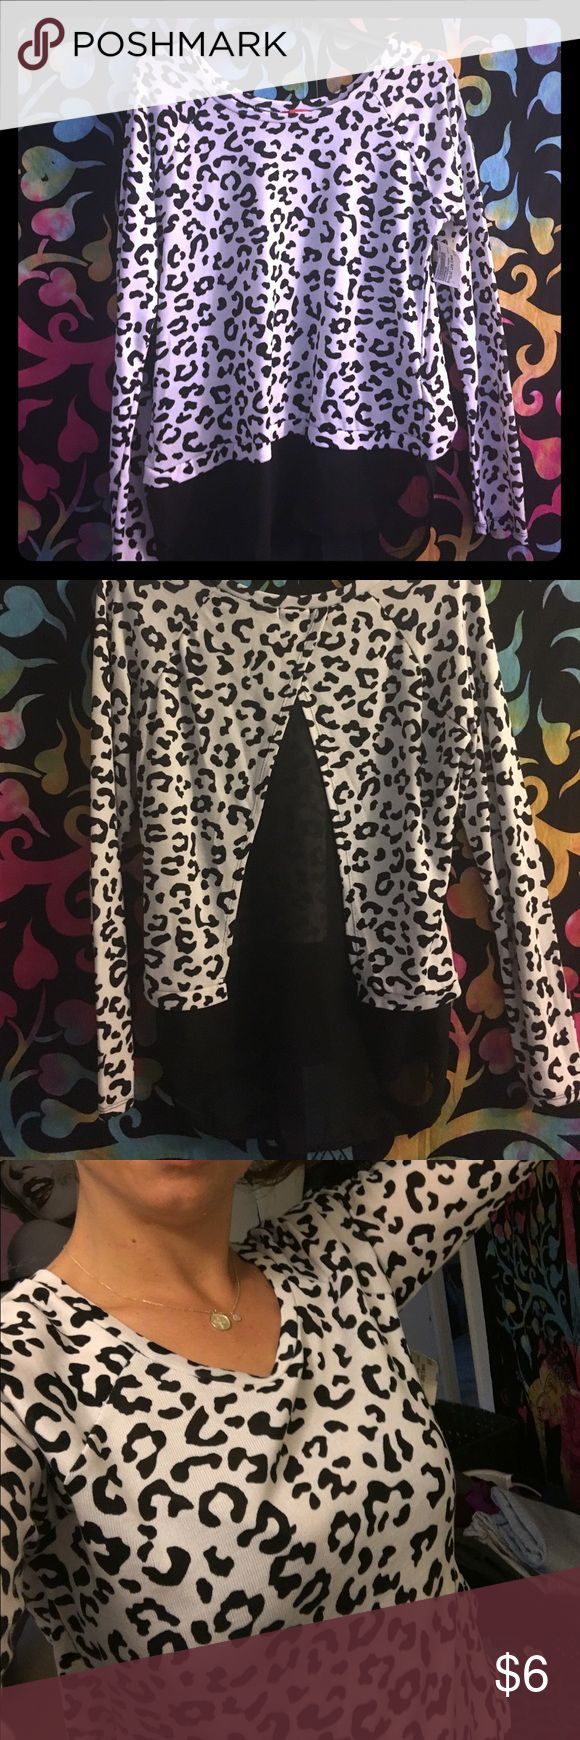 A long sleeved leopard print shirt Brand new long sleeved shirt with tags still attached! Black & white leopard print top that opens up in back cape style. Such a cute shirt and very comfy! Looks great with boots or a more casual look 😍 BONGO Tops Tees - Long Sleeve